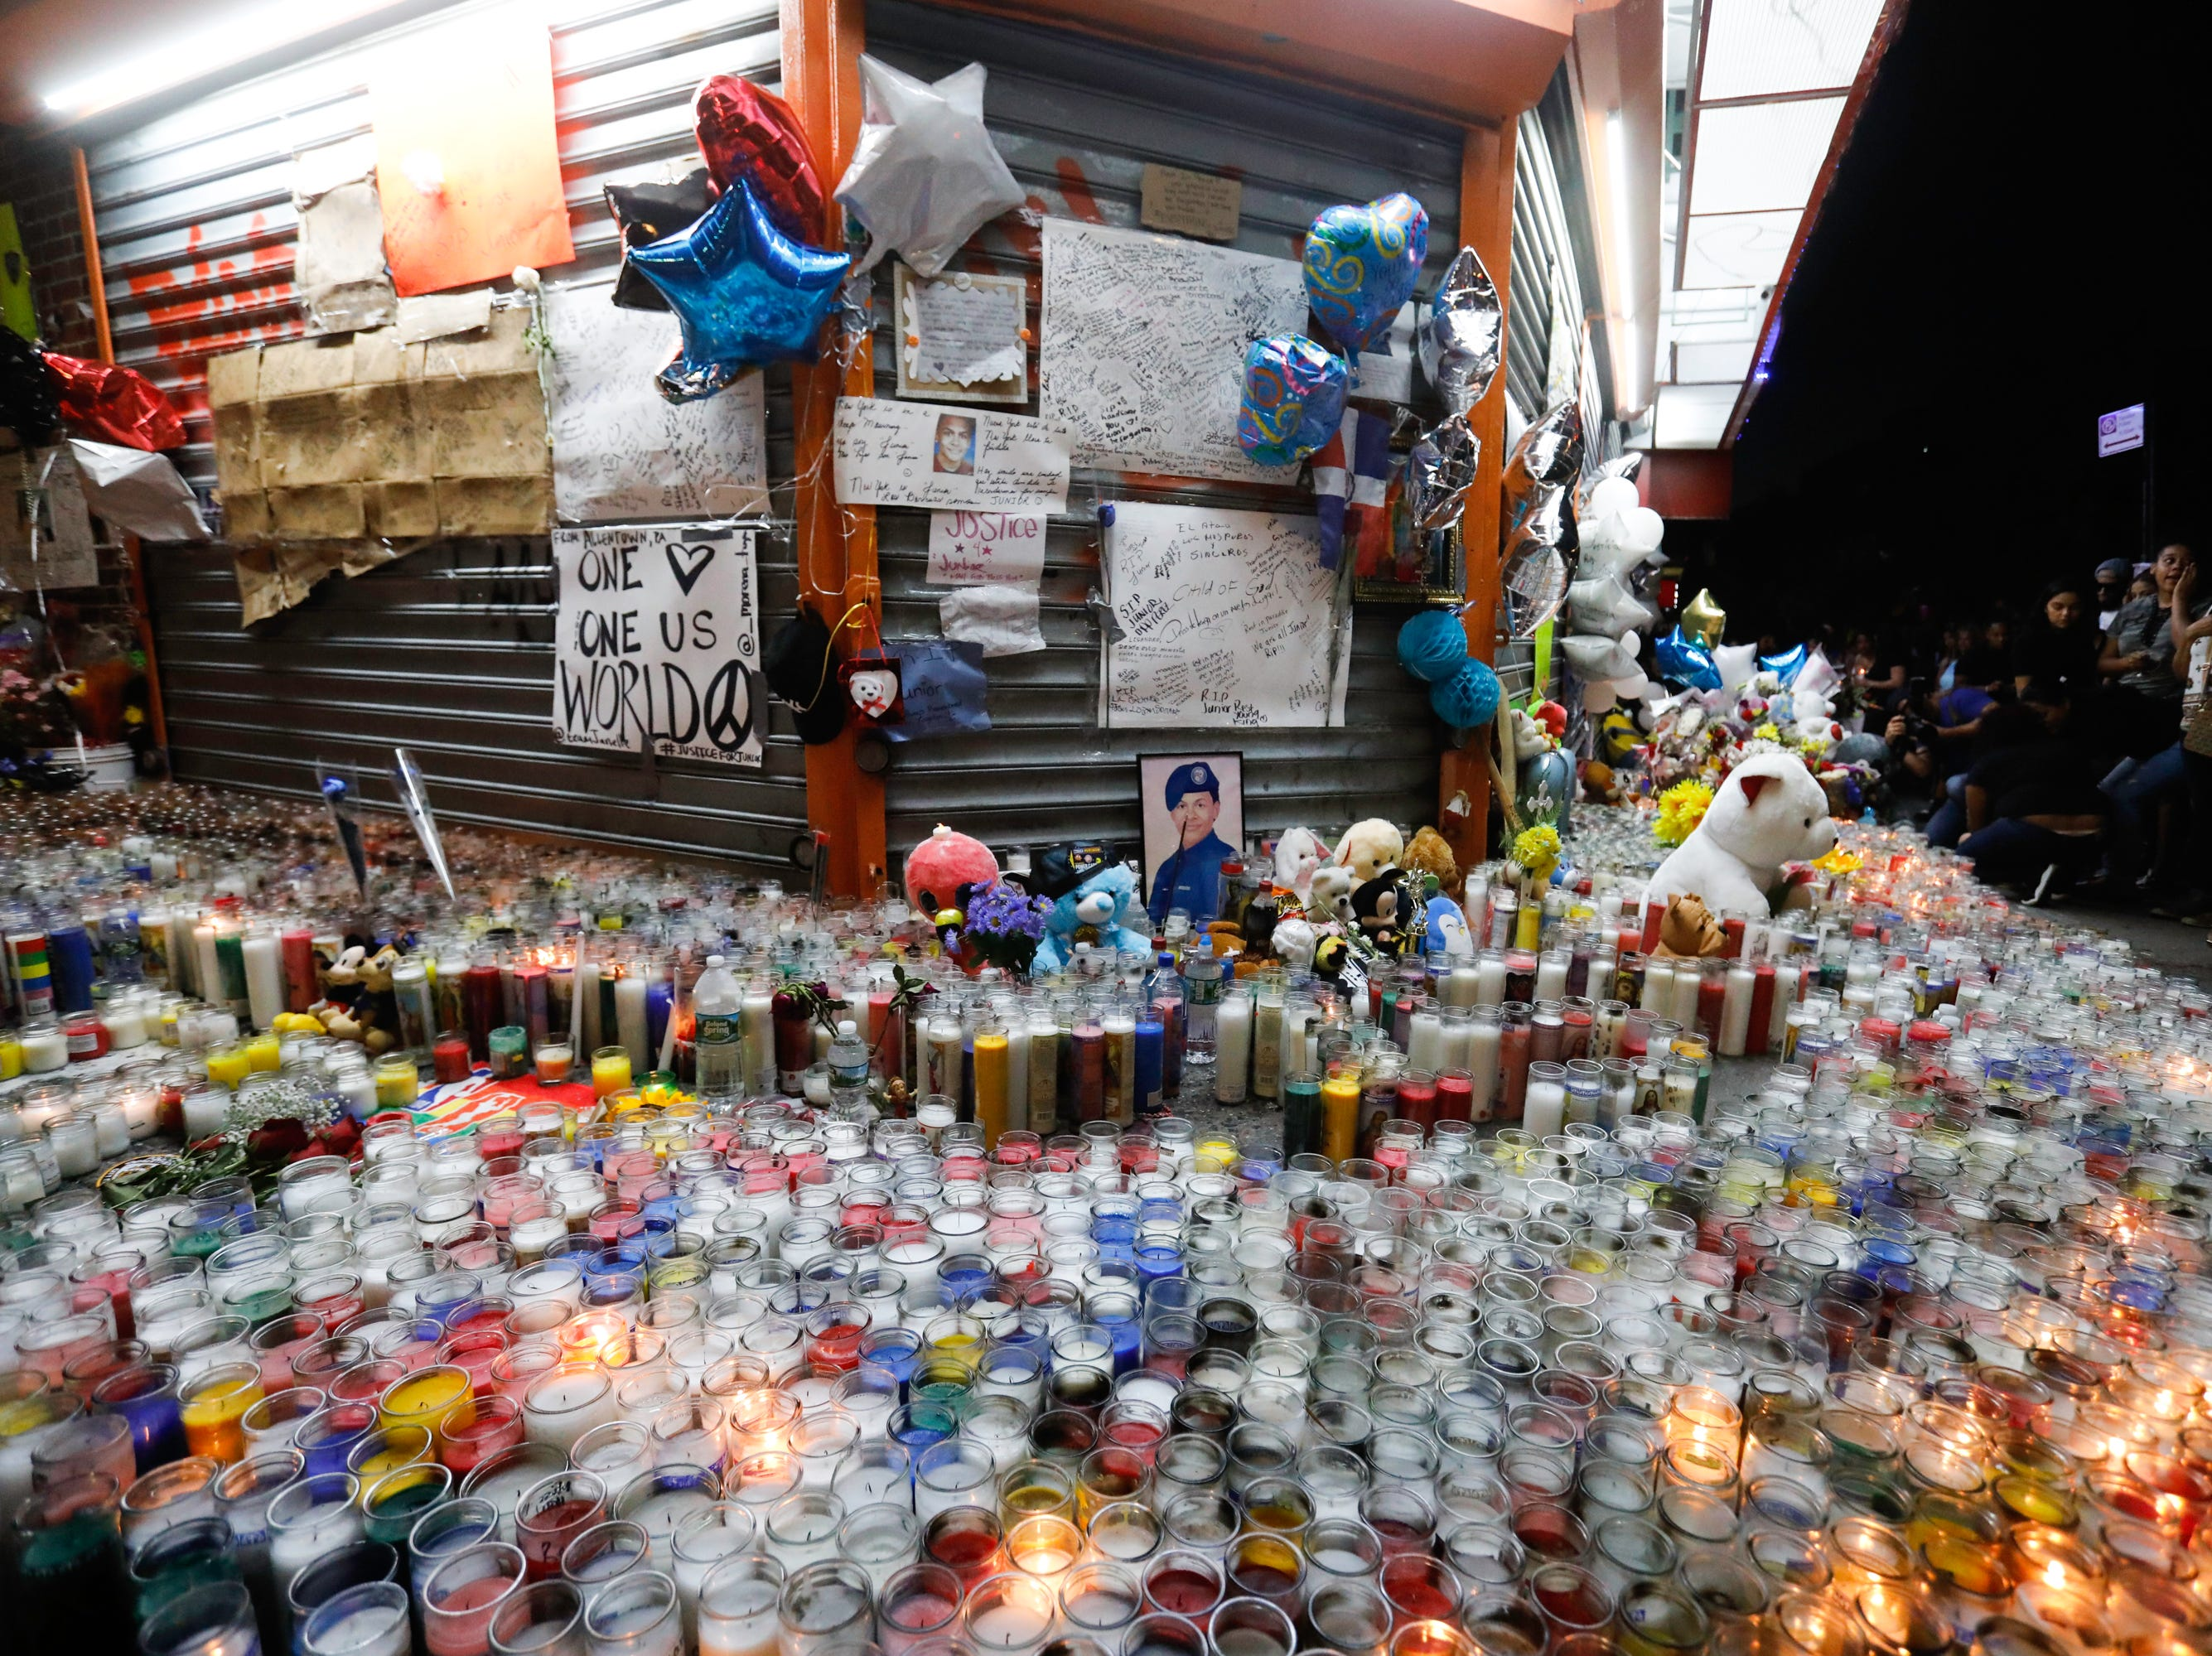 """Thousands of people attended the funeral for Lesandro """"Junior"""" Guzman-Feliz, 15, on June 25, 2018, a South Bronx teen who was killed by a gang by mistaken identity last Wednesday."""